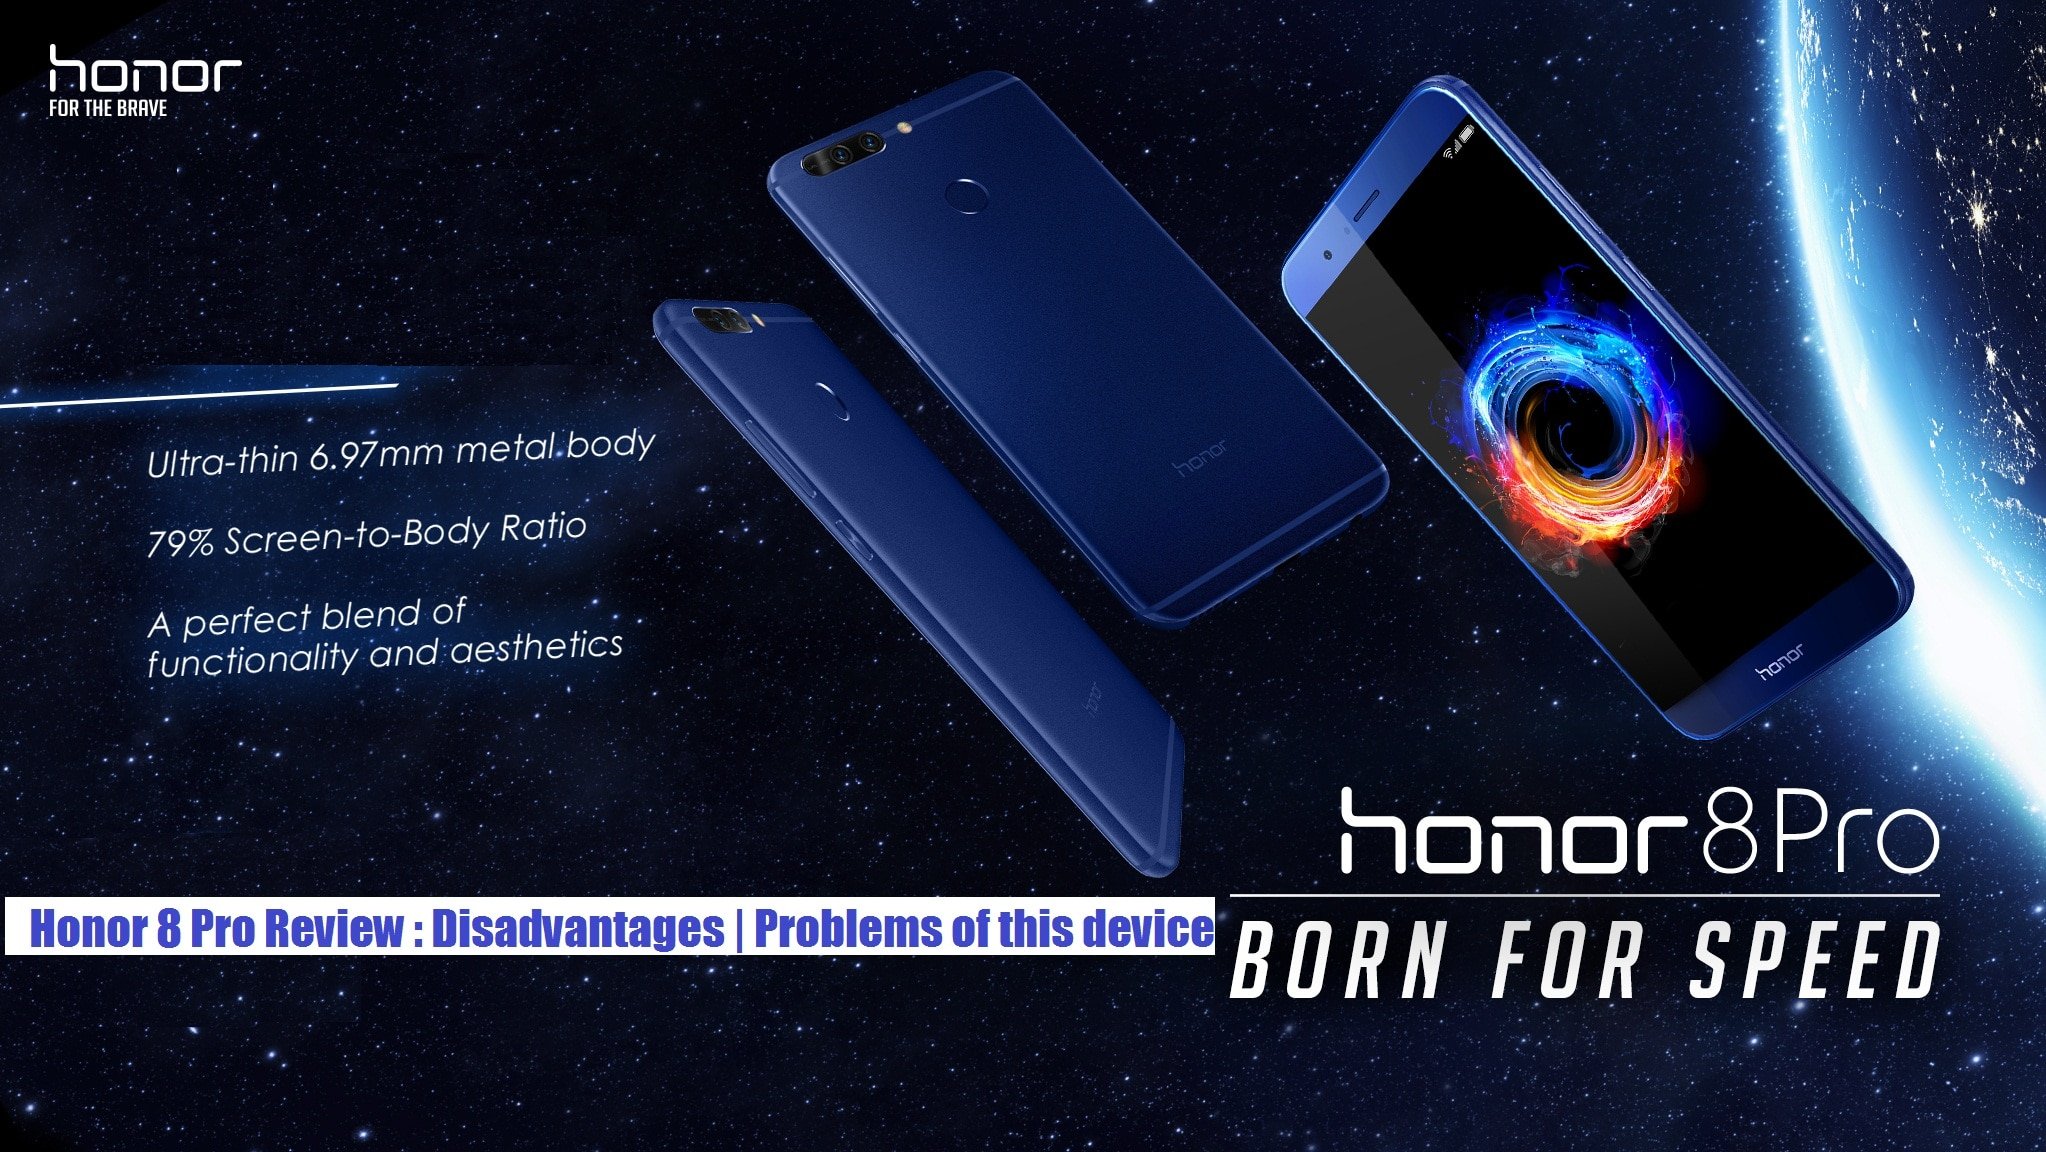 Huawei Honor 8 Pro Review : Advantages, Disadvantages, Problems